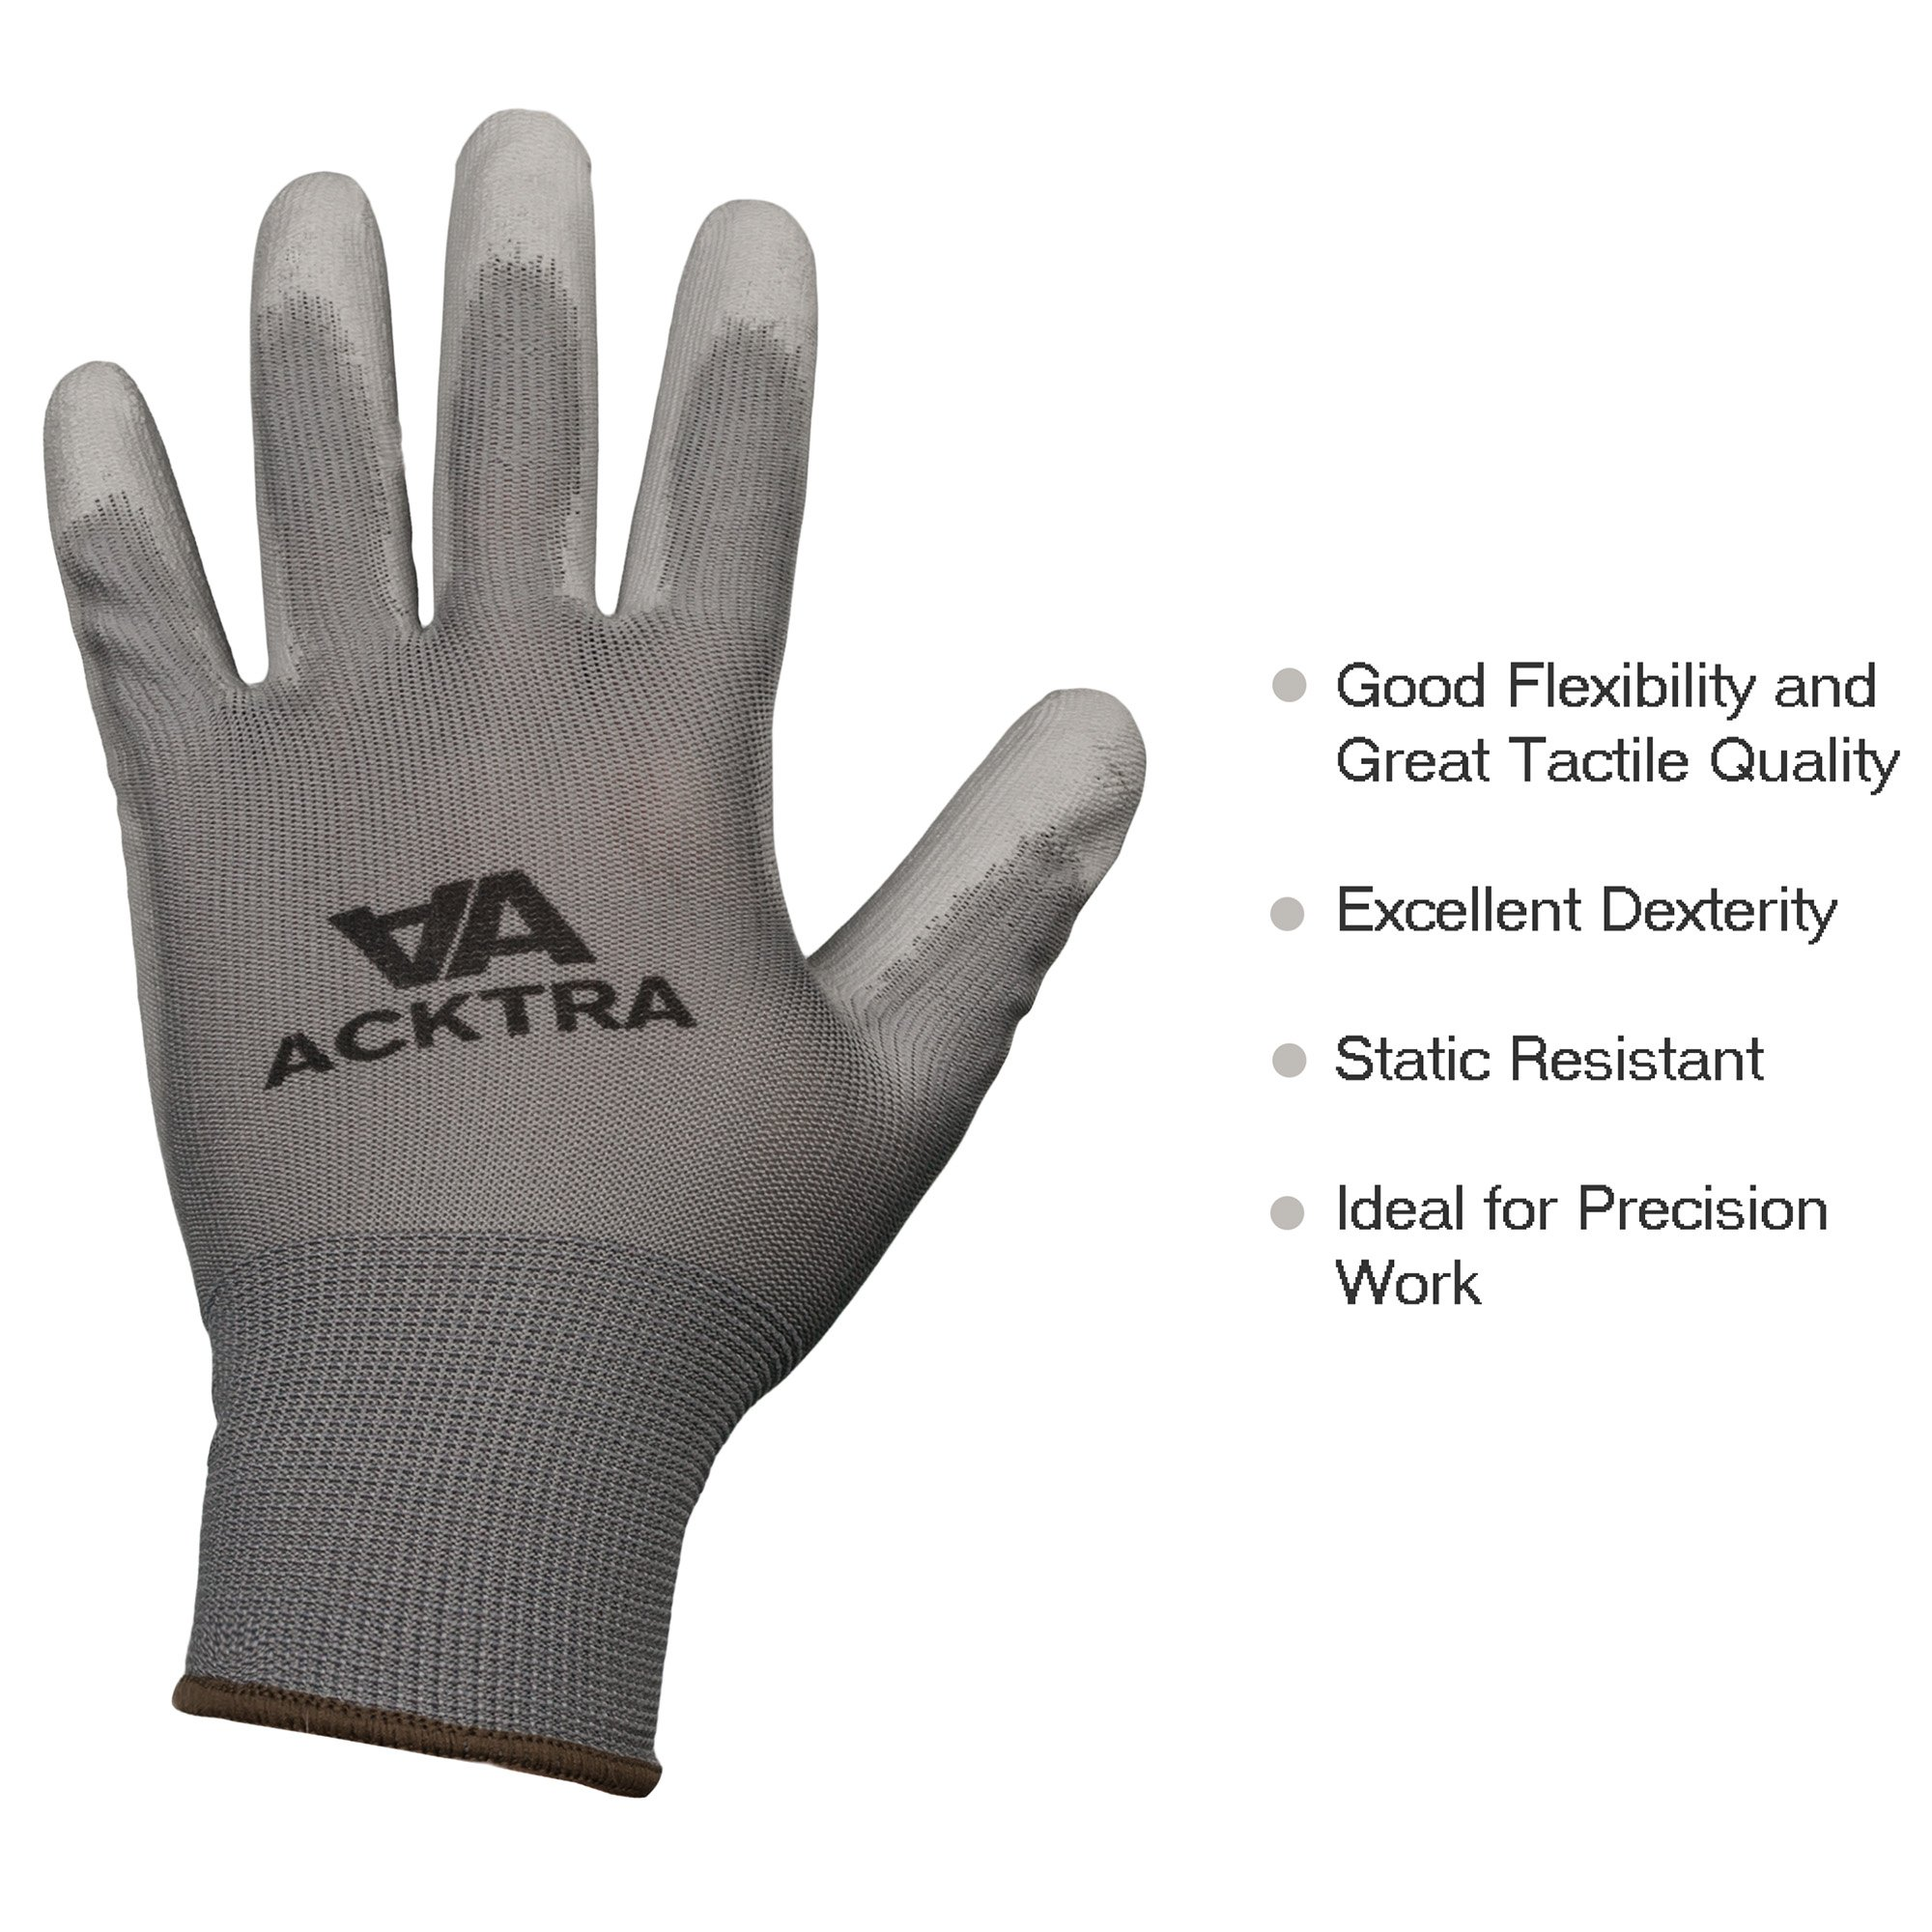 ACKTRA Ultra-Thin Polyurethane (PU) Coated Nylon Safety WORK GLOVES 12 Pairs, Knit Wrist Cuff, for Precision Work, for… 4